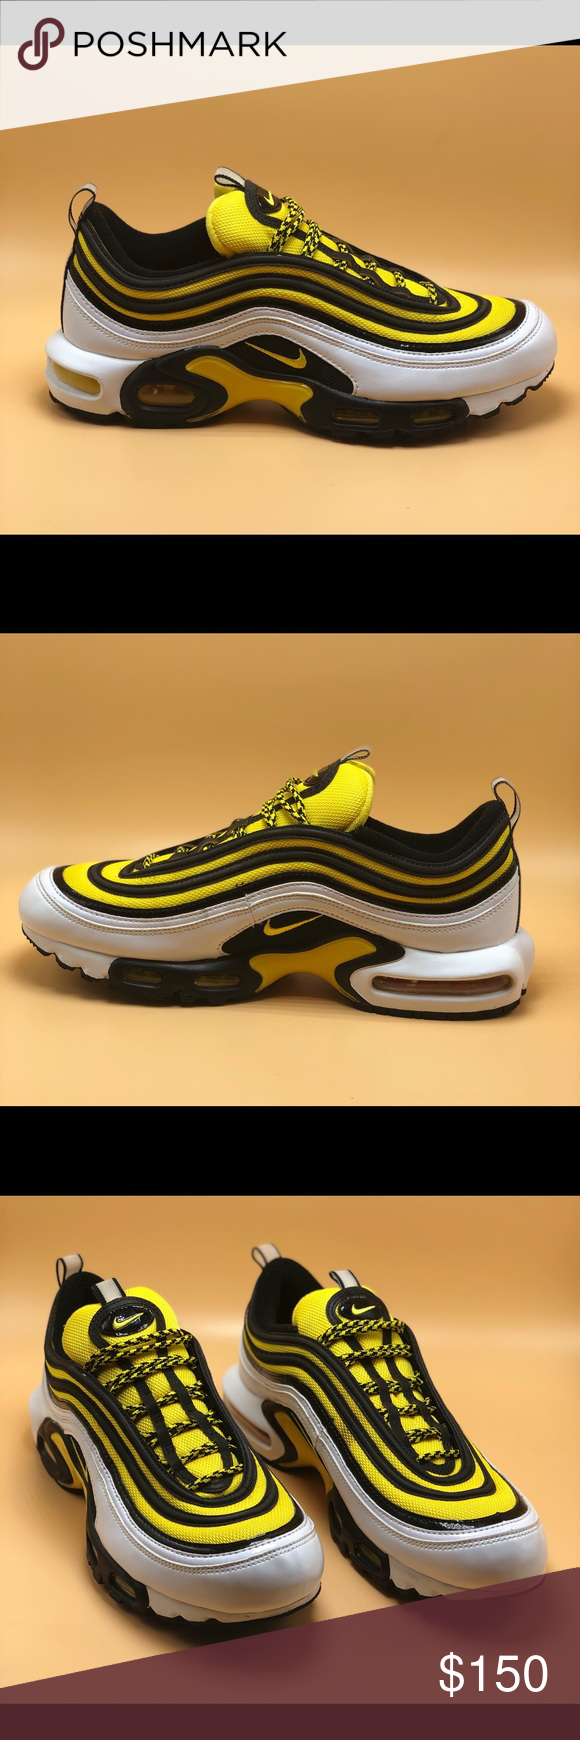 Nike Air Max Plus 97 Frequency Pack Nike Air Max Plus Air Max